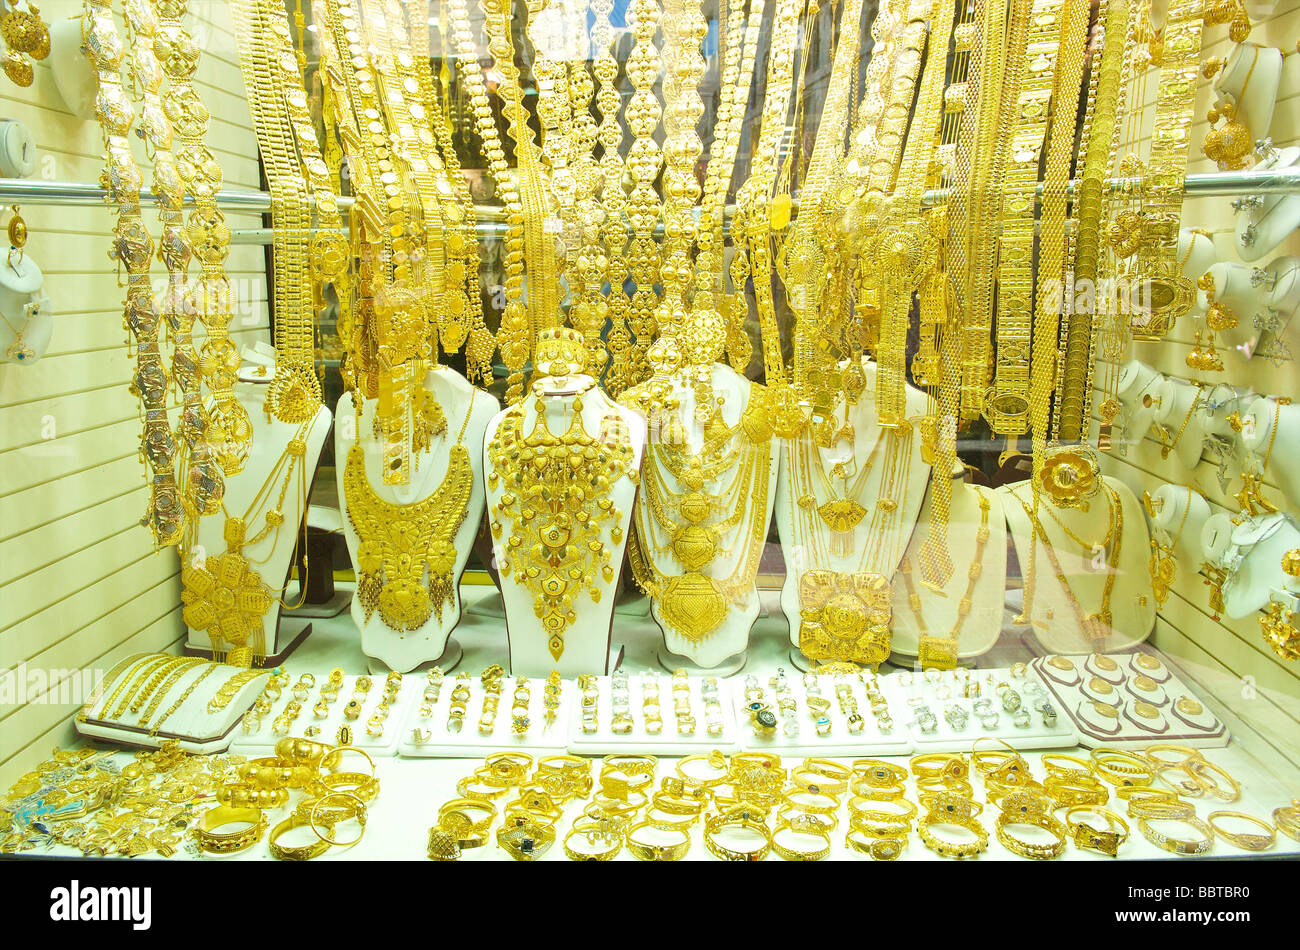 Dubai gold souq in the old Arab town - Stock Image